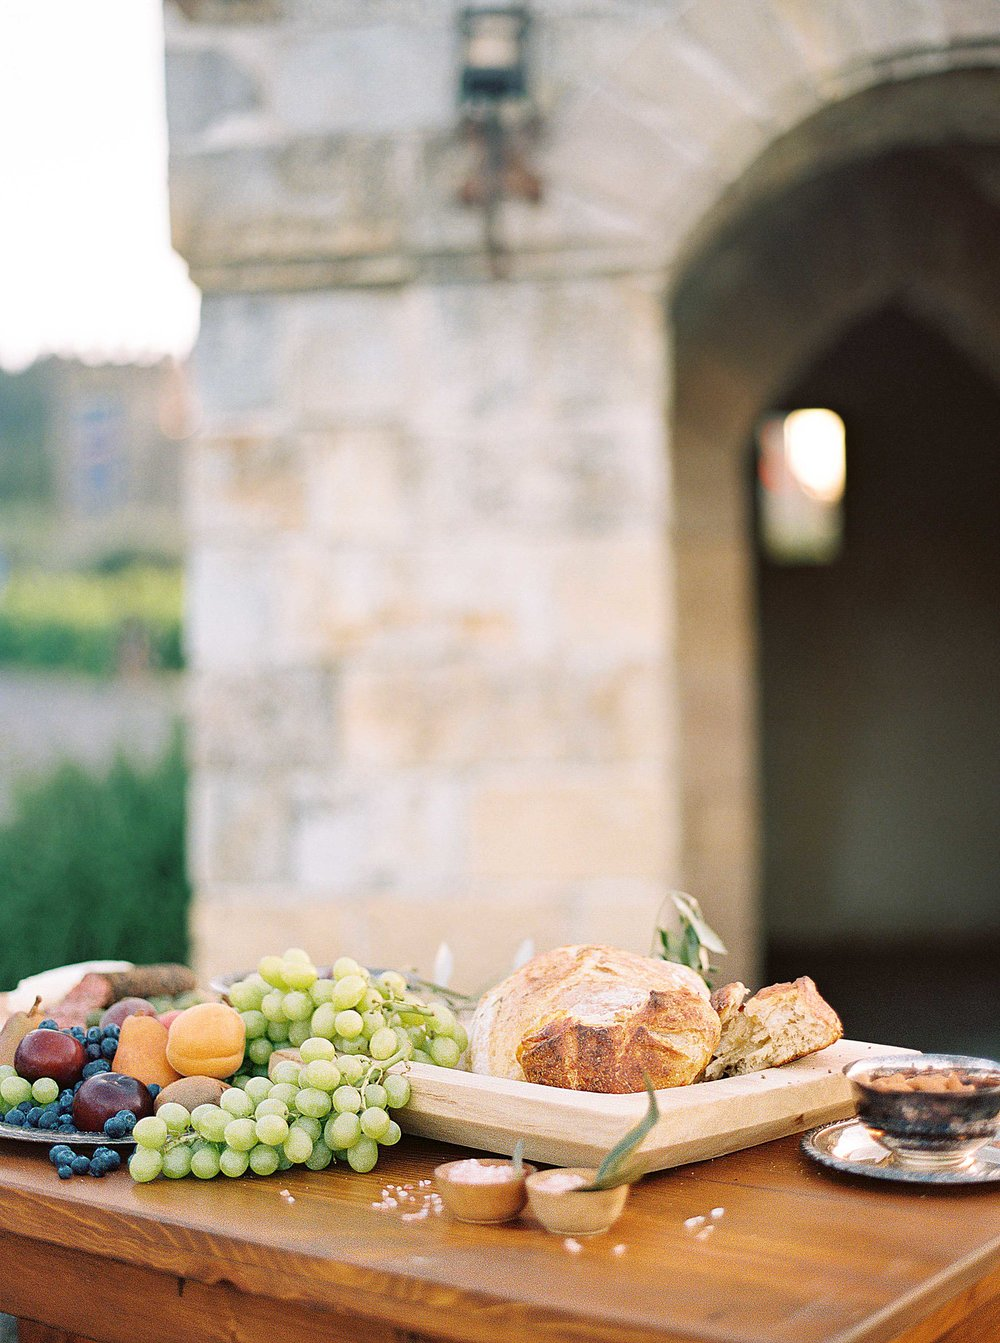 074napa_wedding_photographer_and_videographer_destination_and_elopement_photography.jpg